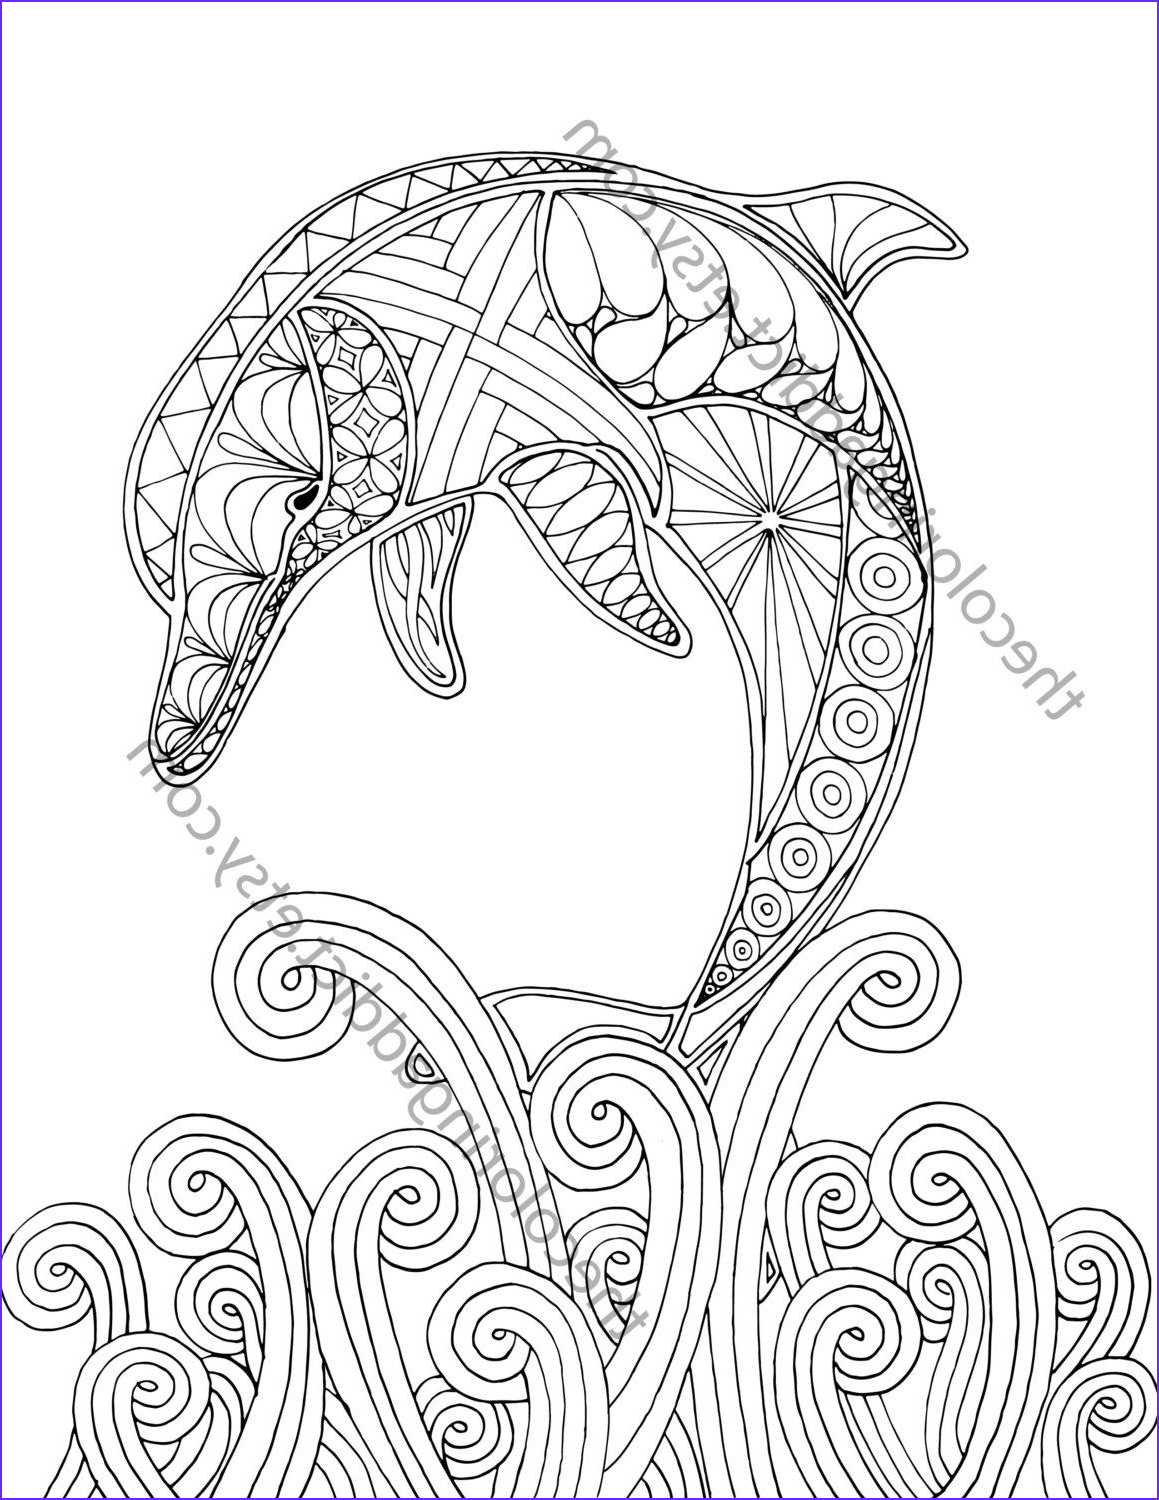 Dolphin Coloring Book Best Of Stock Dolphin Coloring Page Adult Coloring Sheet Nautical